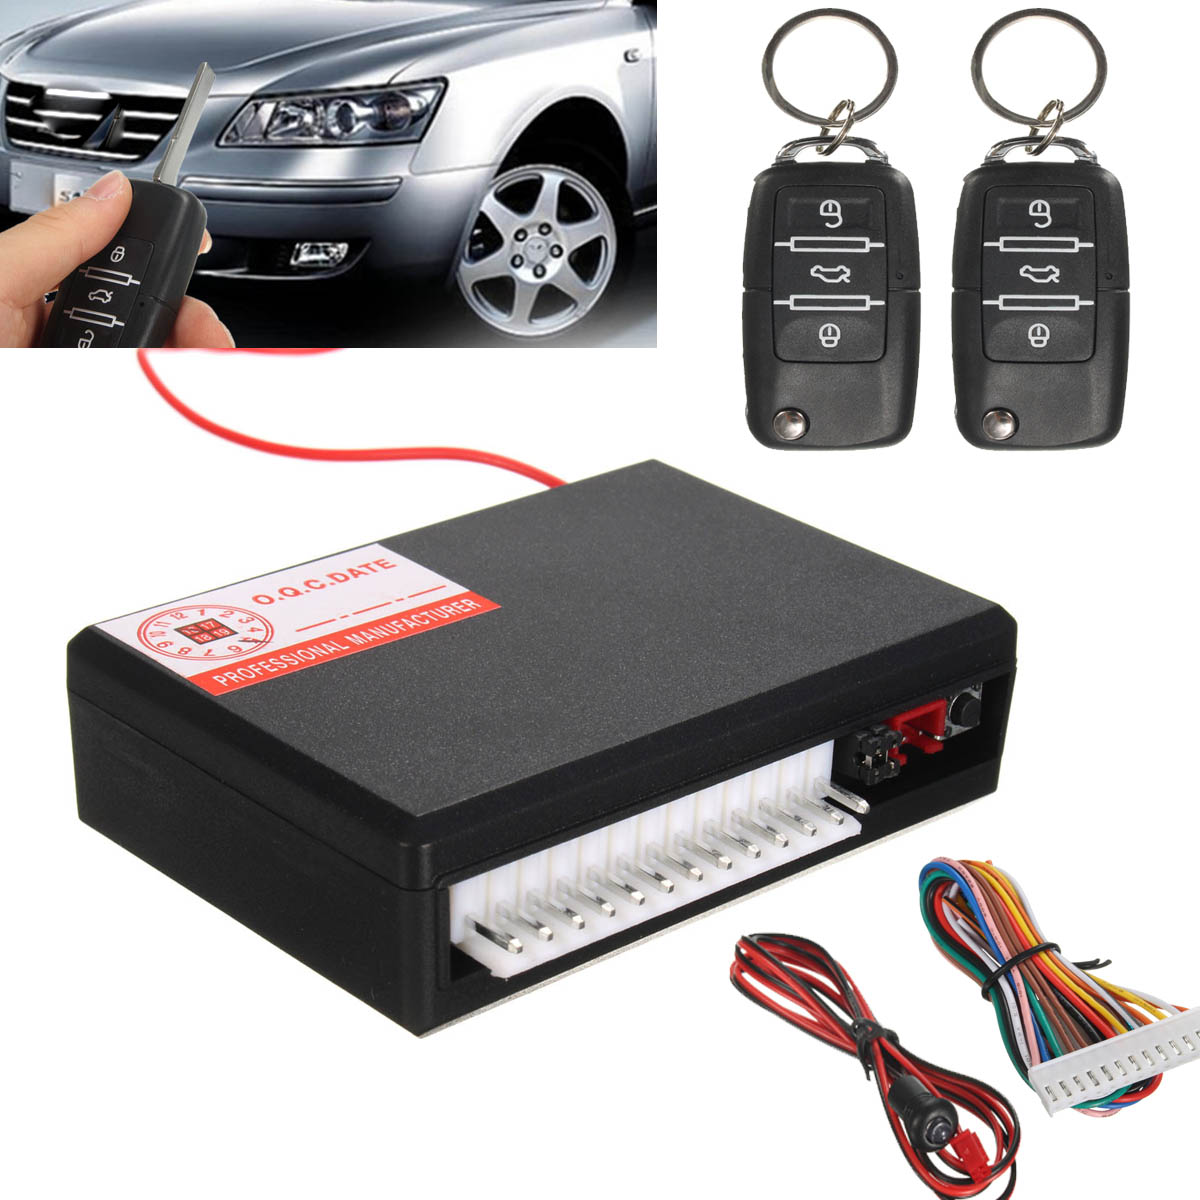 New Universal Car Vehicle Remote Control Central Kit Door Lock Locking Keyless Entry Theft System(China (Mainland))